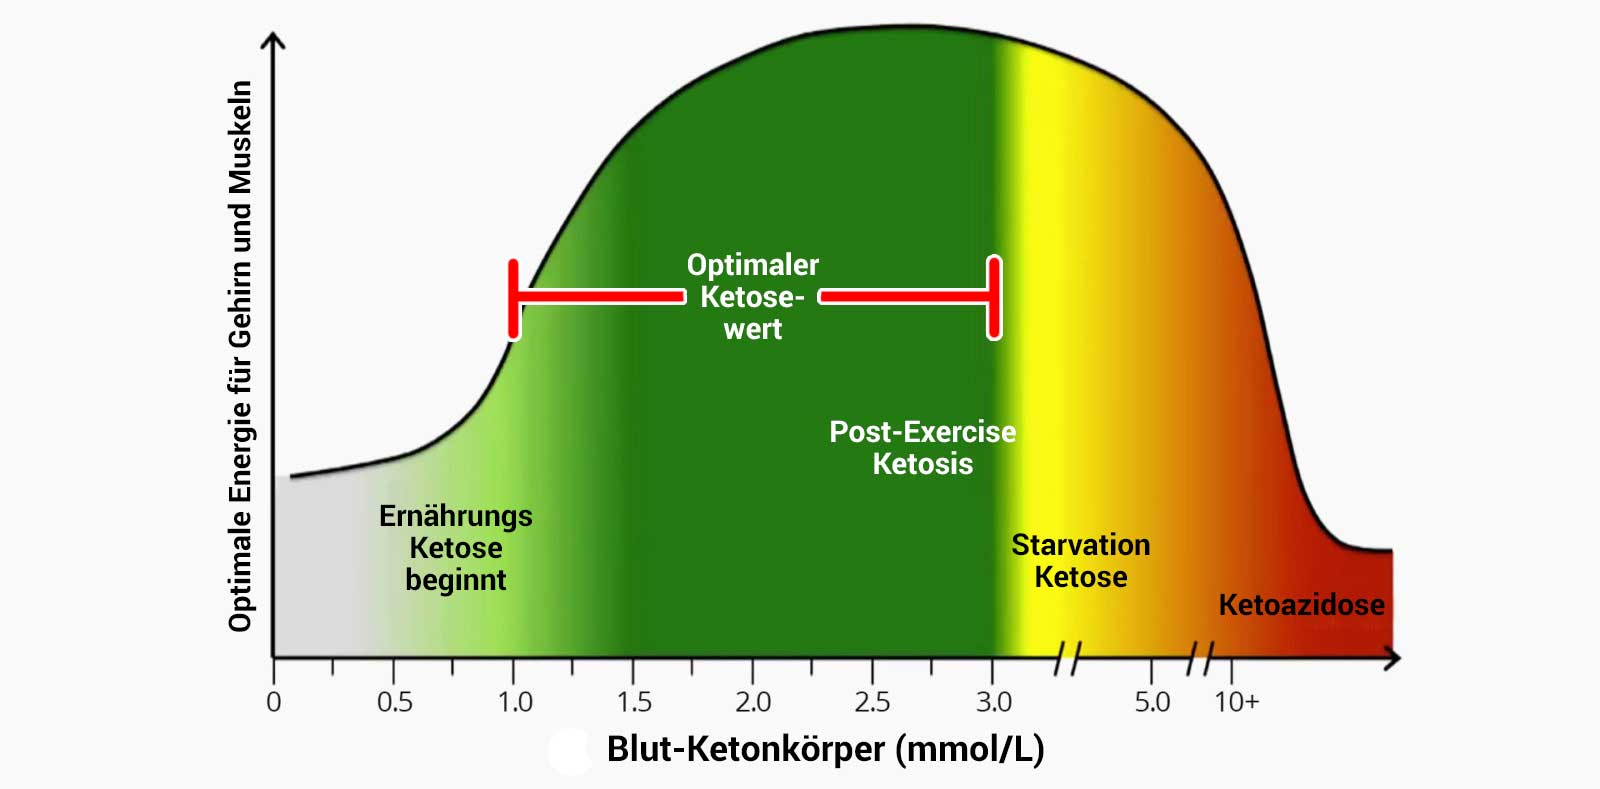 optimaler-ketose-wert-ketonkoerper-grafik